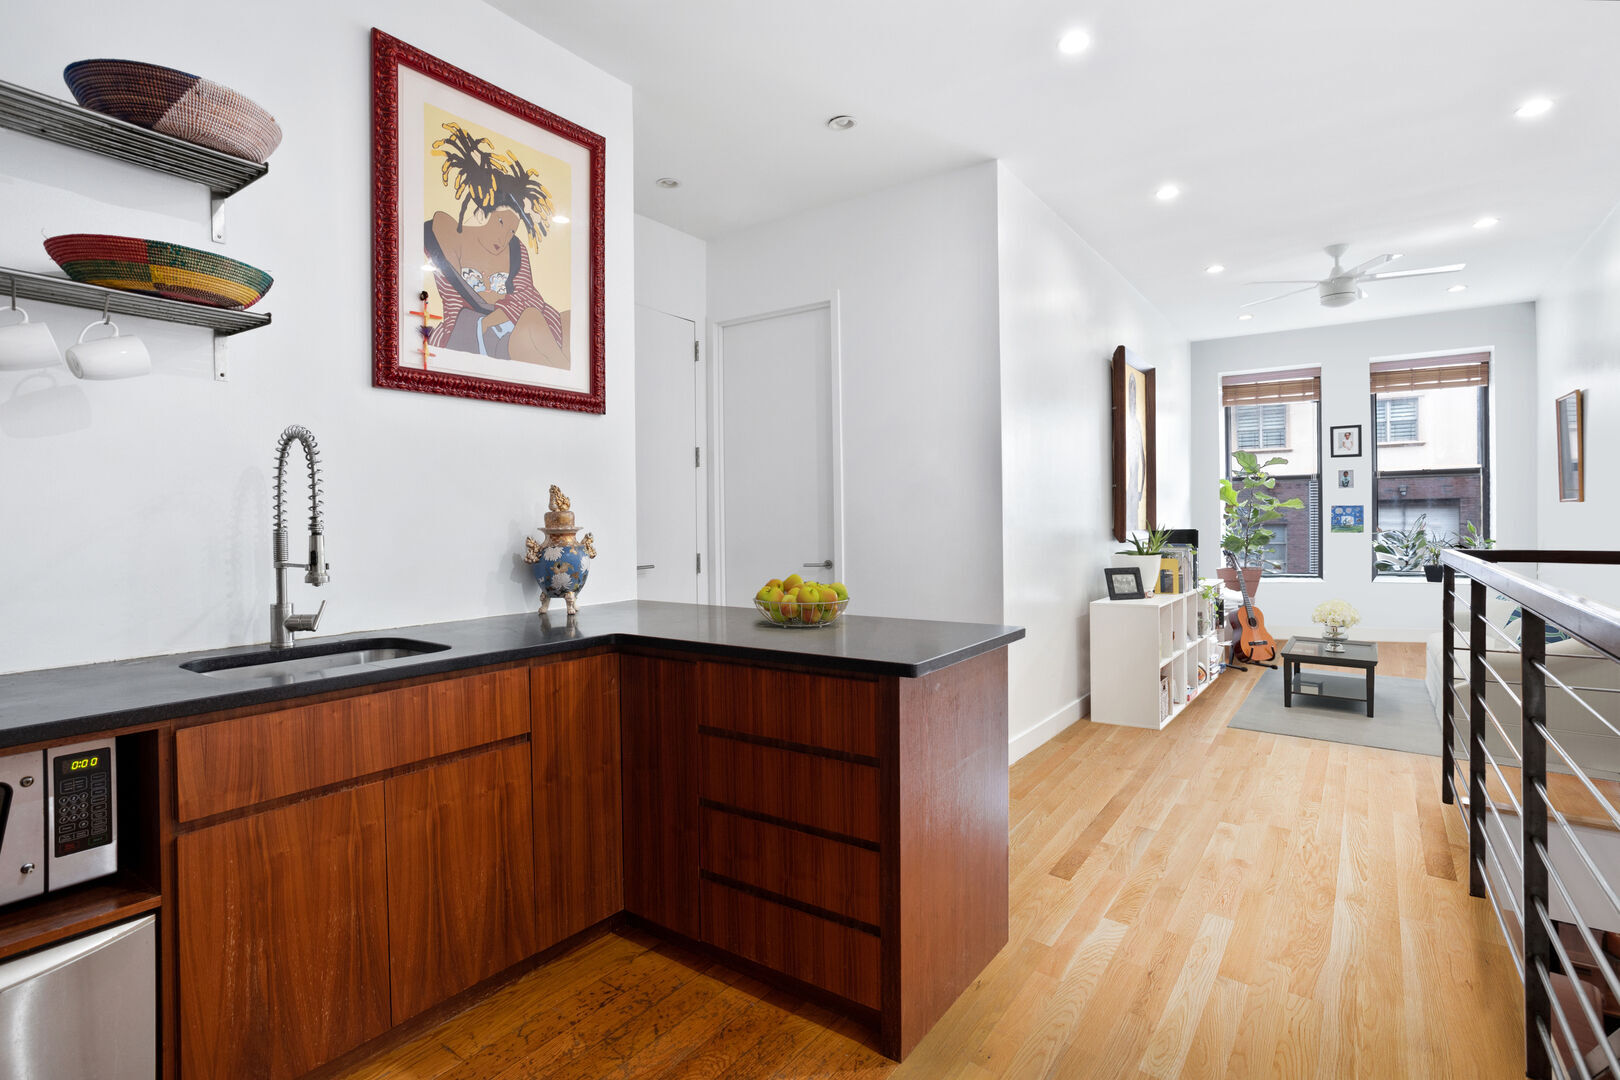 Apartment for sale at 580 Marcy Avenue, Apt 1-A